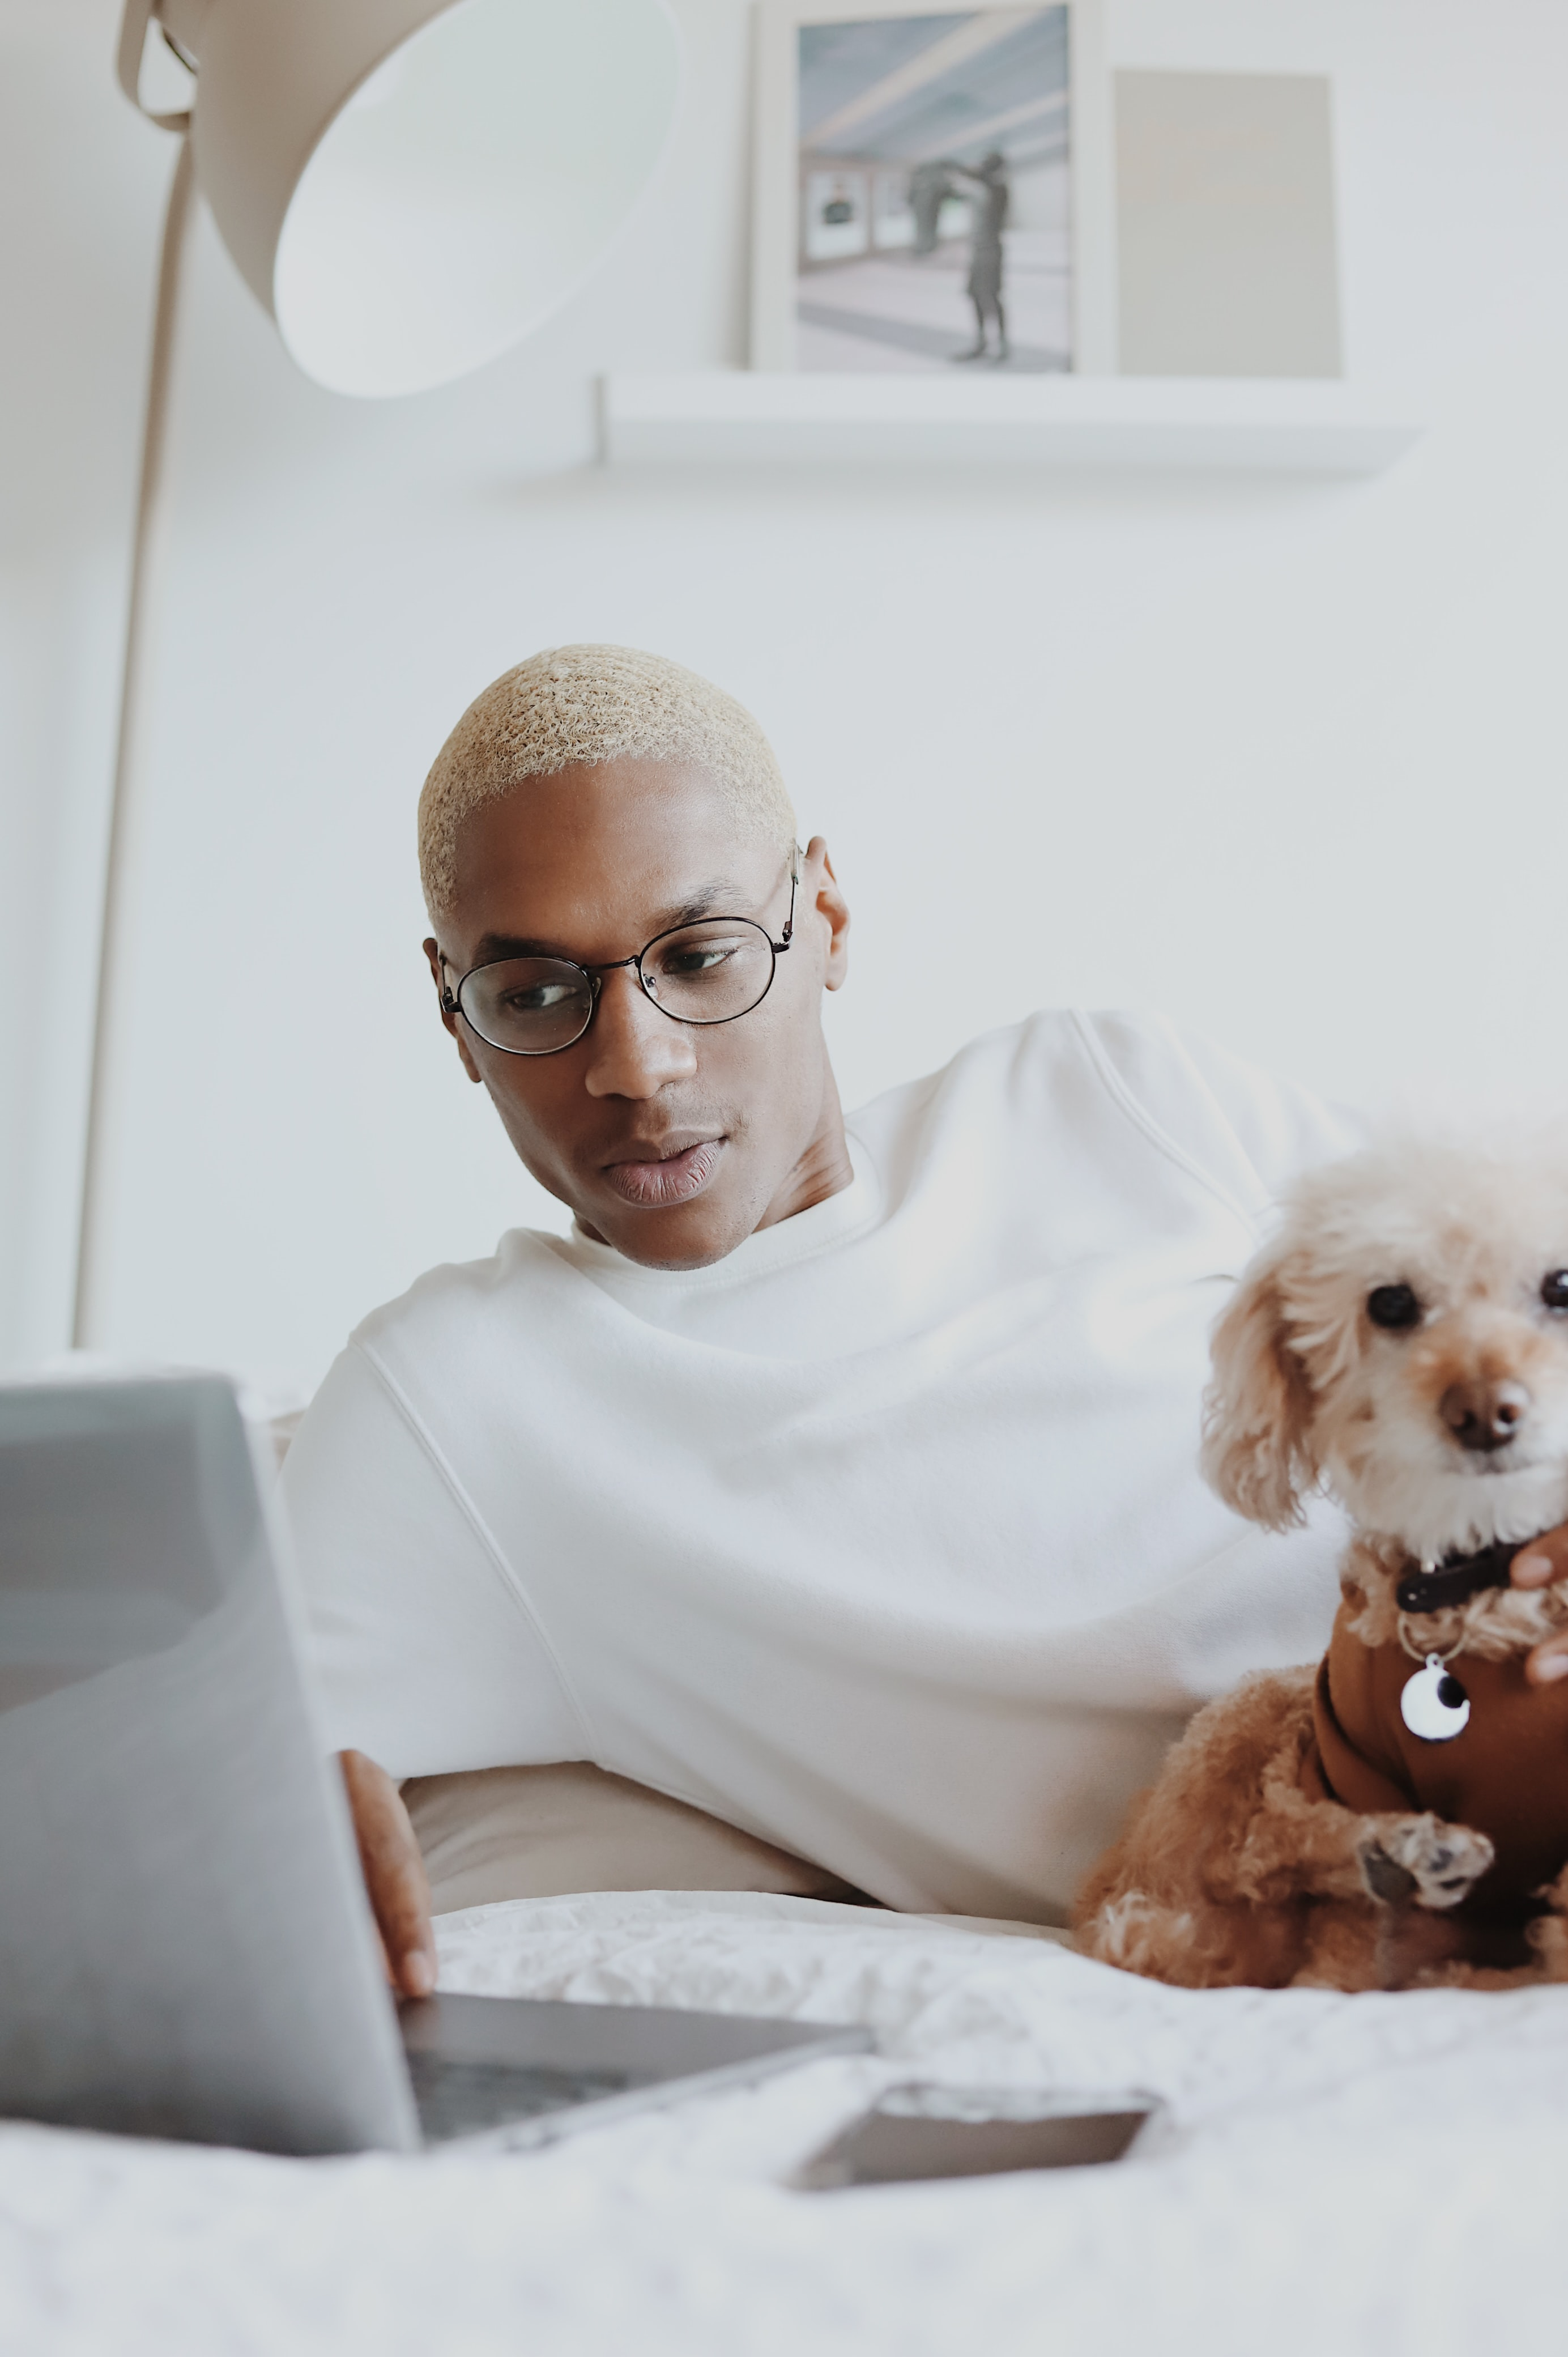 A man in white and his dog look at a laptop. He looks focused on his Zoom meetings.